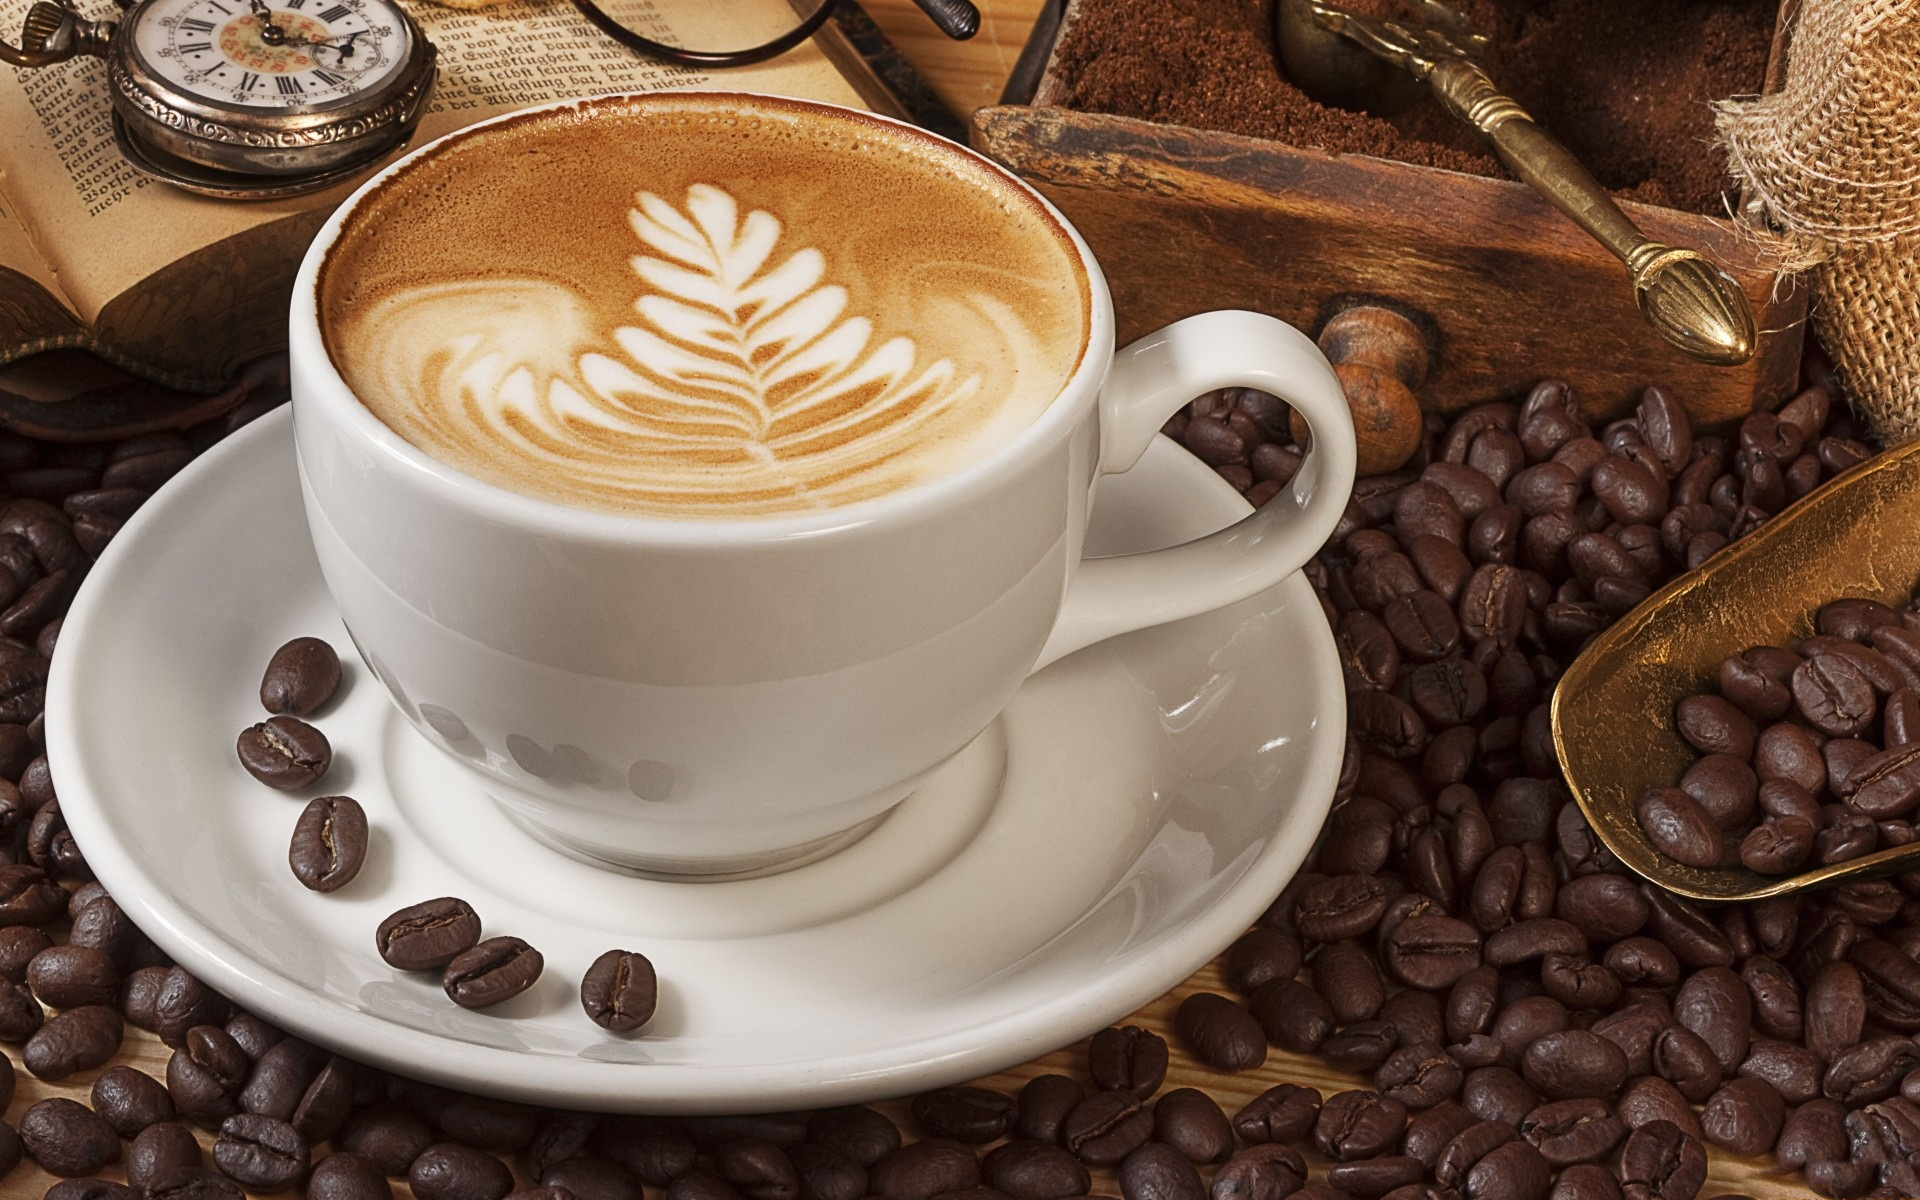 28 02 17 lovely coffee cup wallpaper5875 wall paper